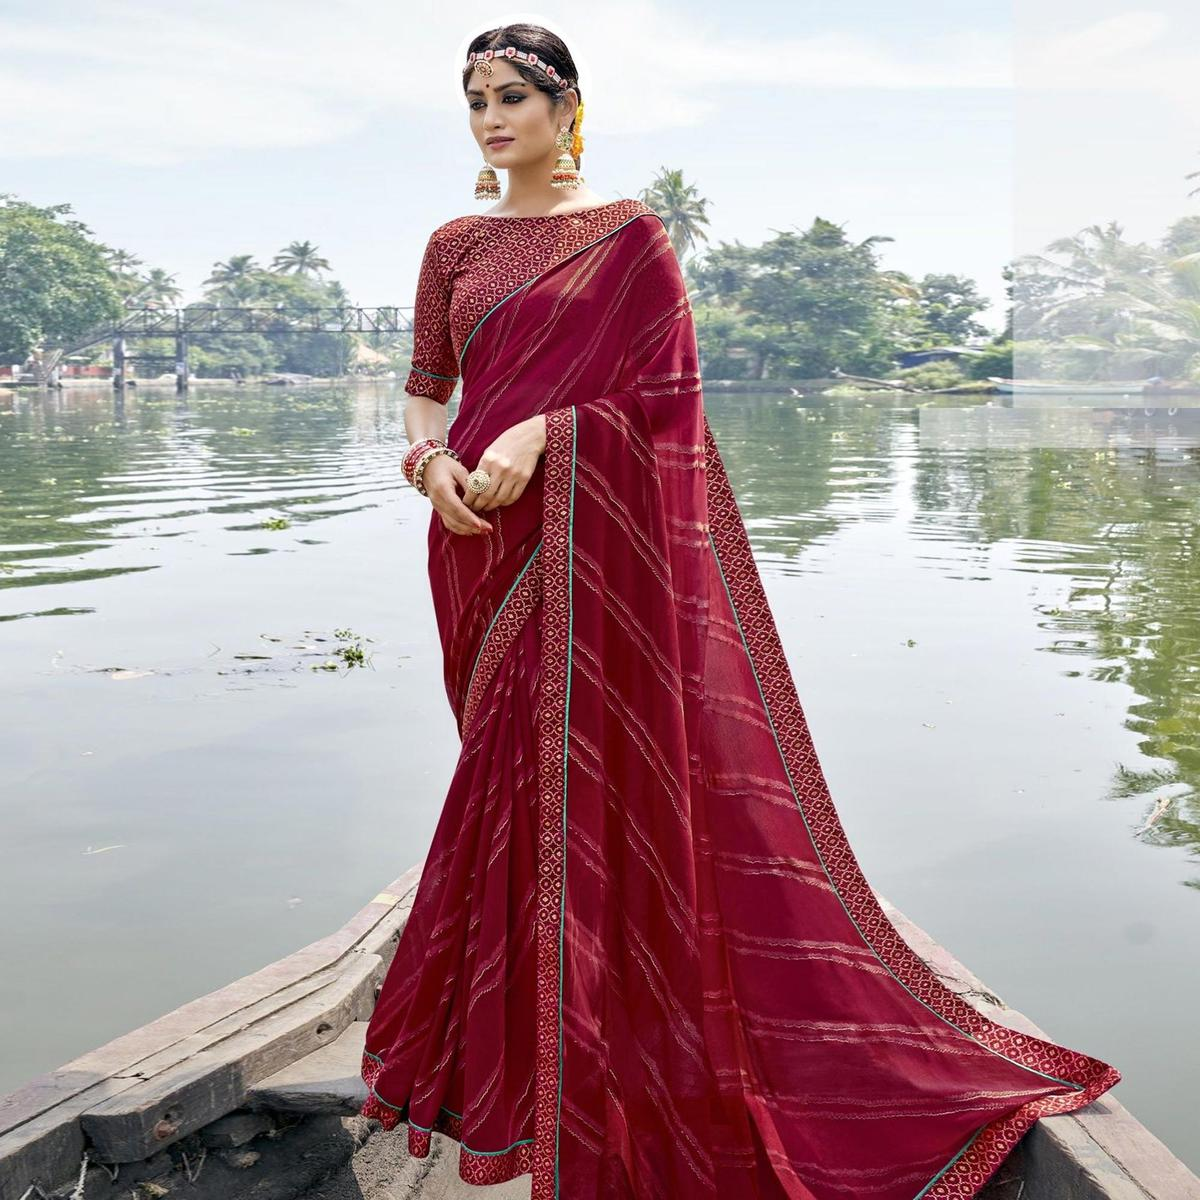 Triveni Maroon Colored Georgette Foil Printed Saree With Blouse Piece